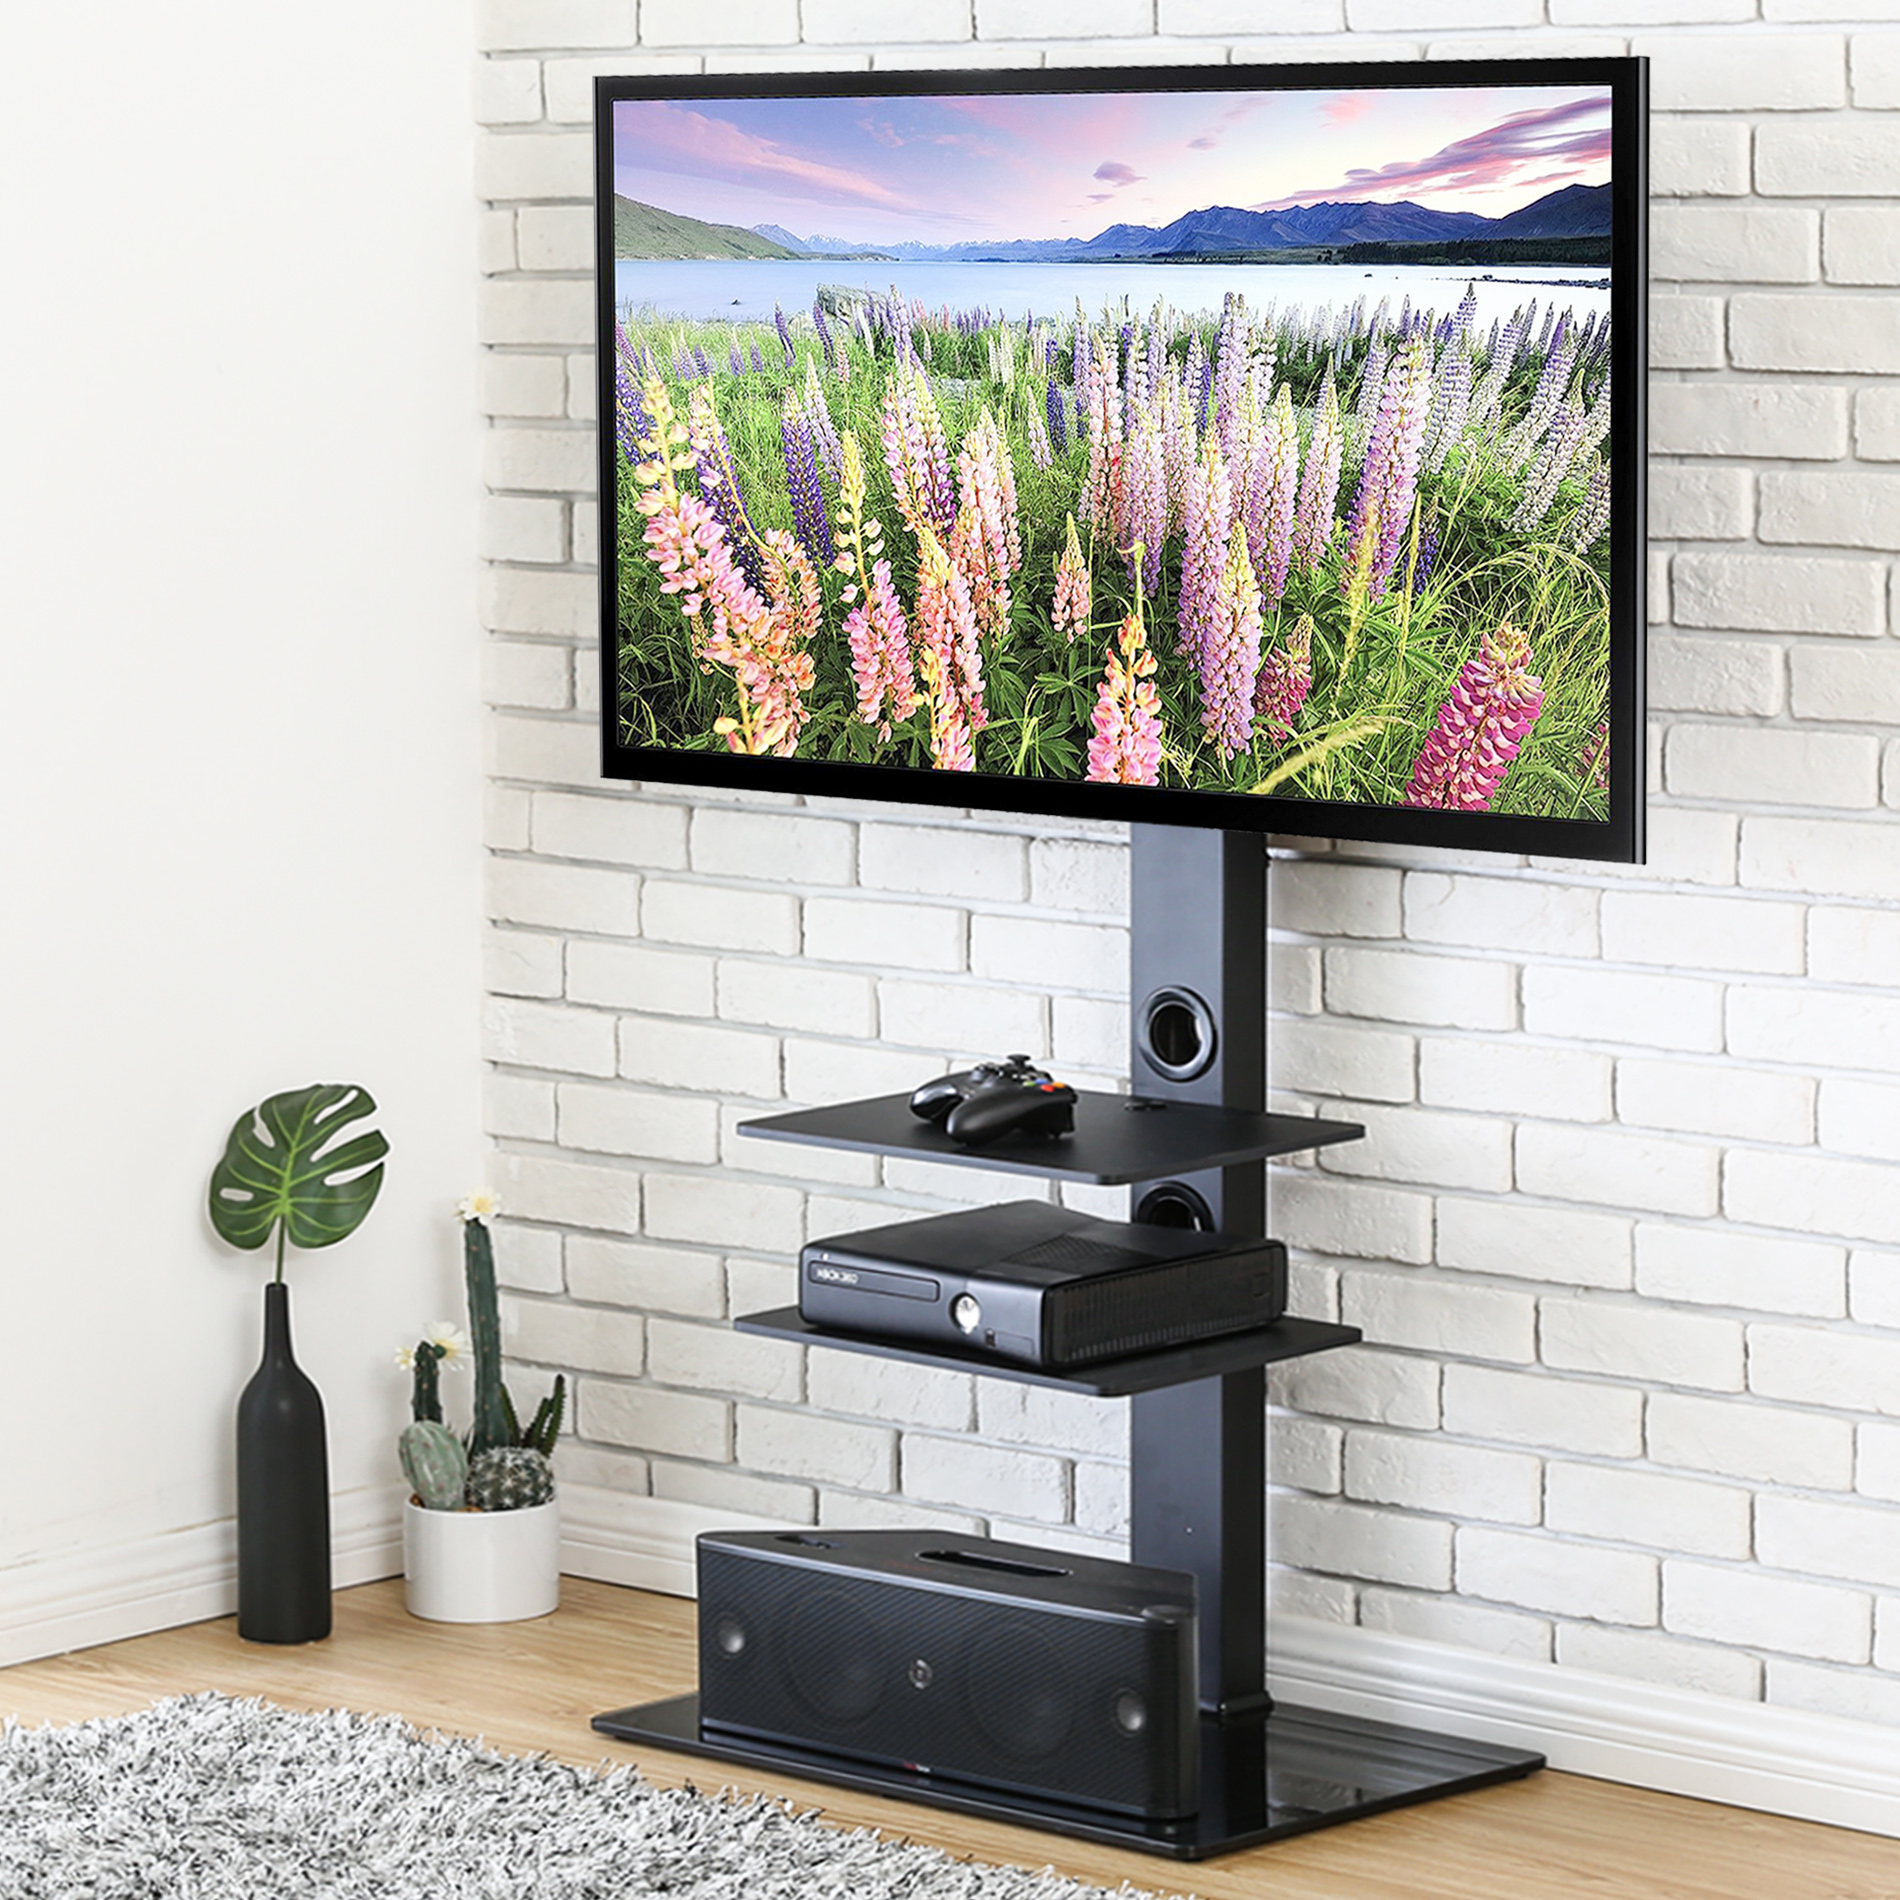 FITUEYES TV stand with mount - Universal Floor Swivel Tv base with Shelf for up to 65 inch Samsung TCL Apple Vizio TV TT307001MB